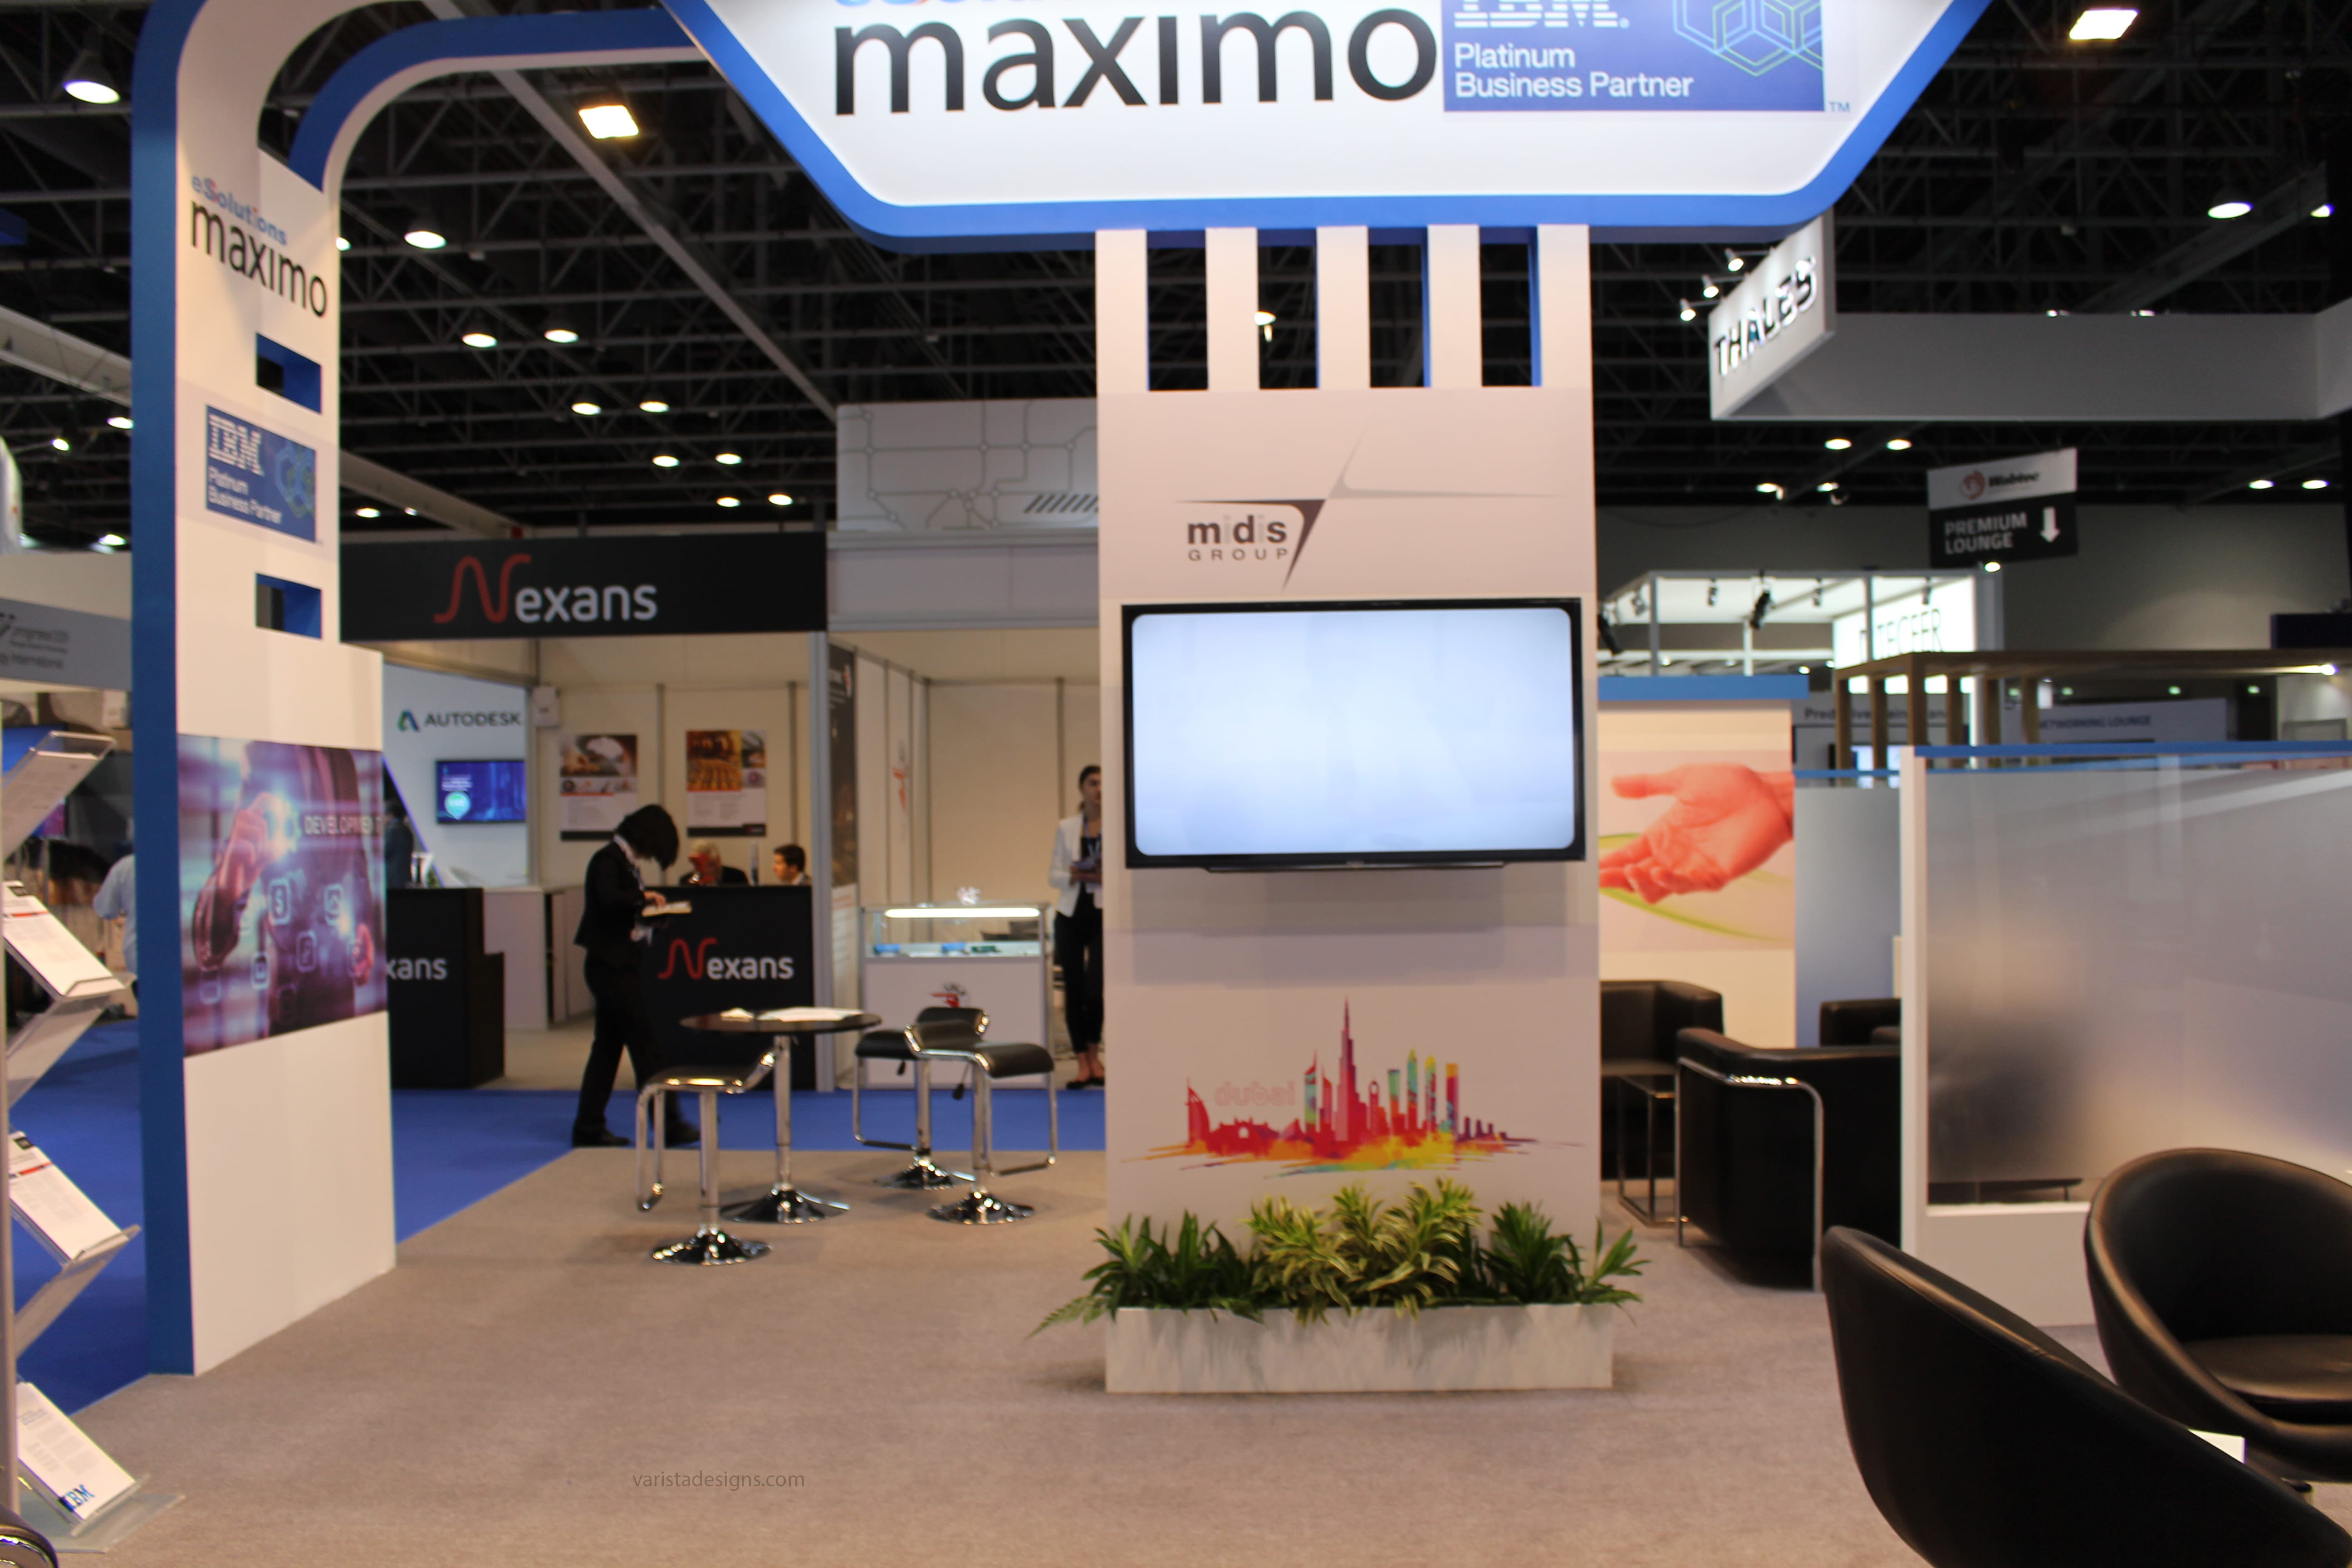 eSolutions Maximo exhibition stand builders MER-2017